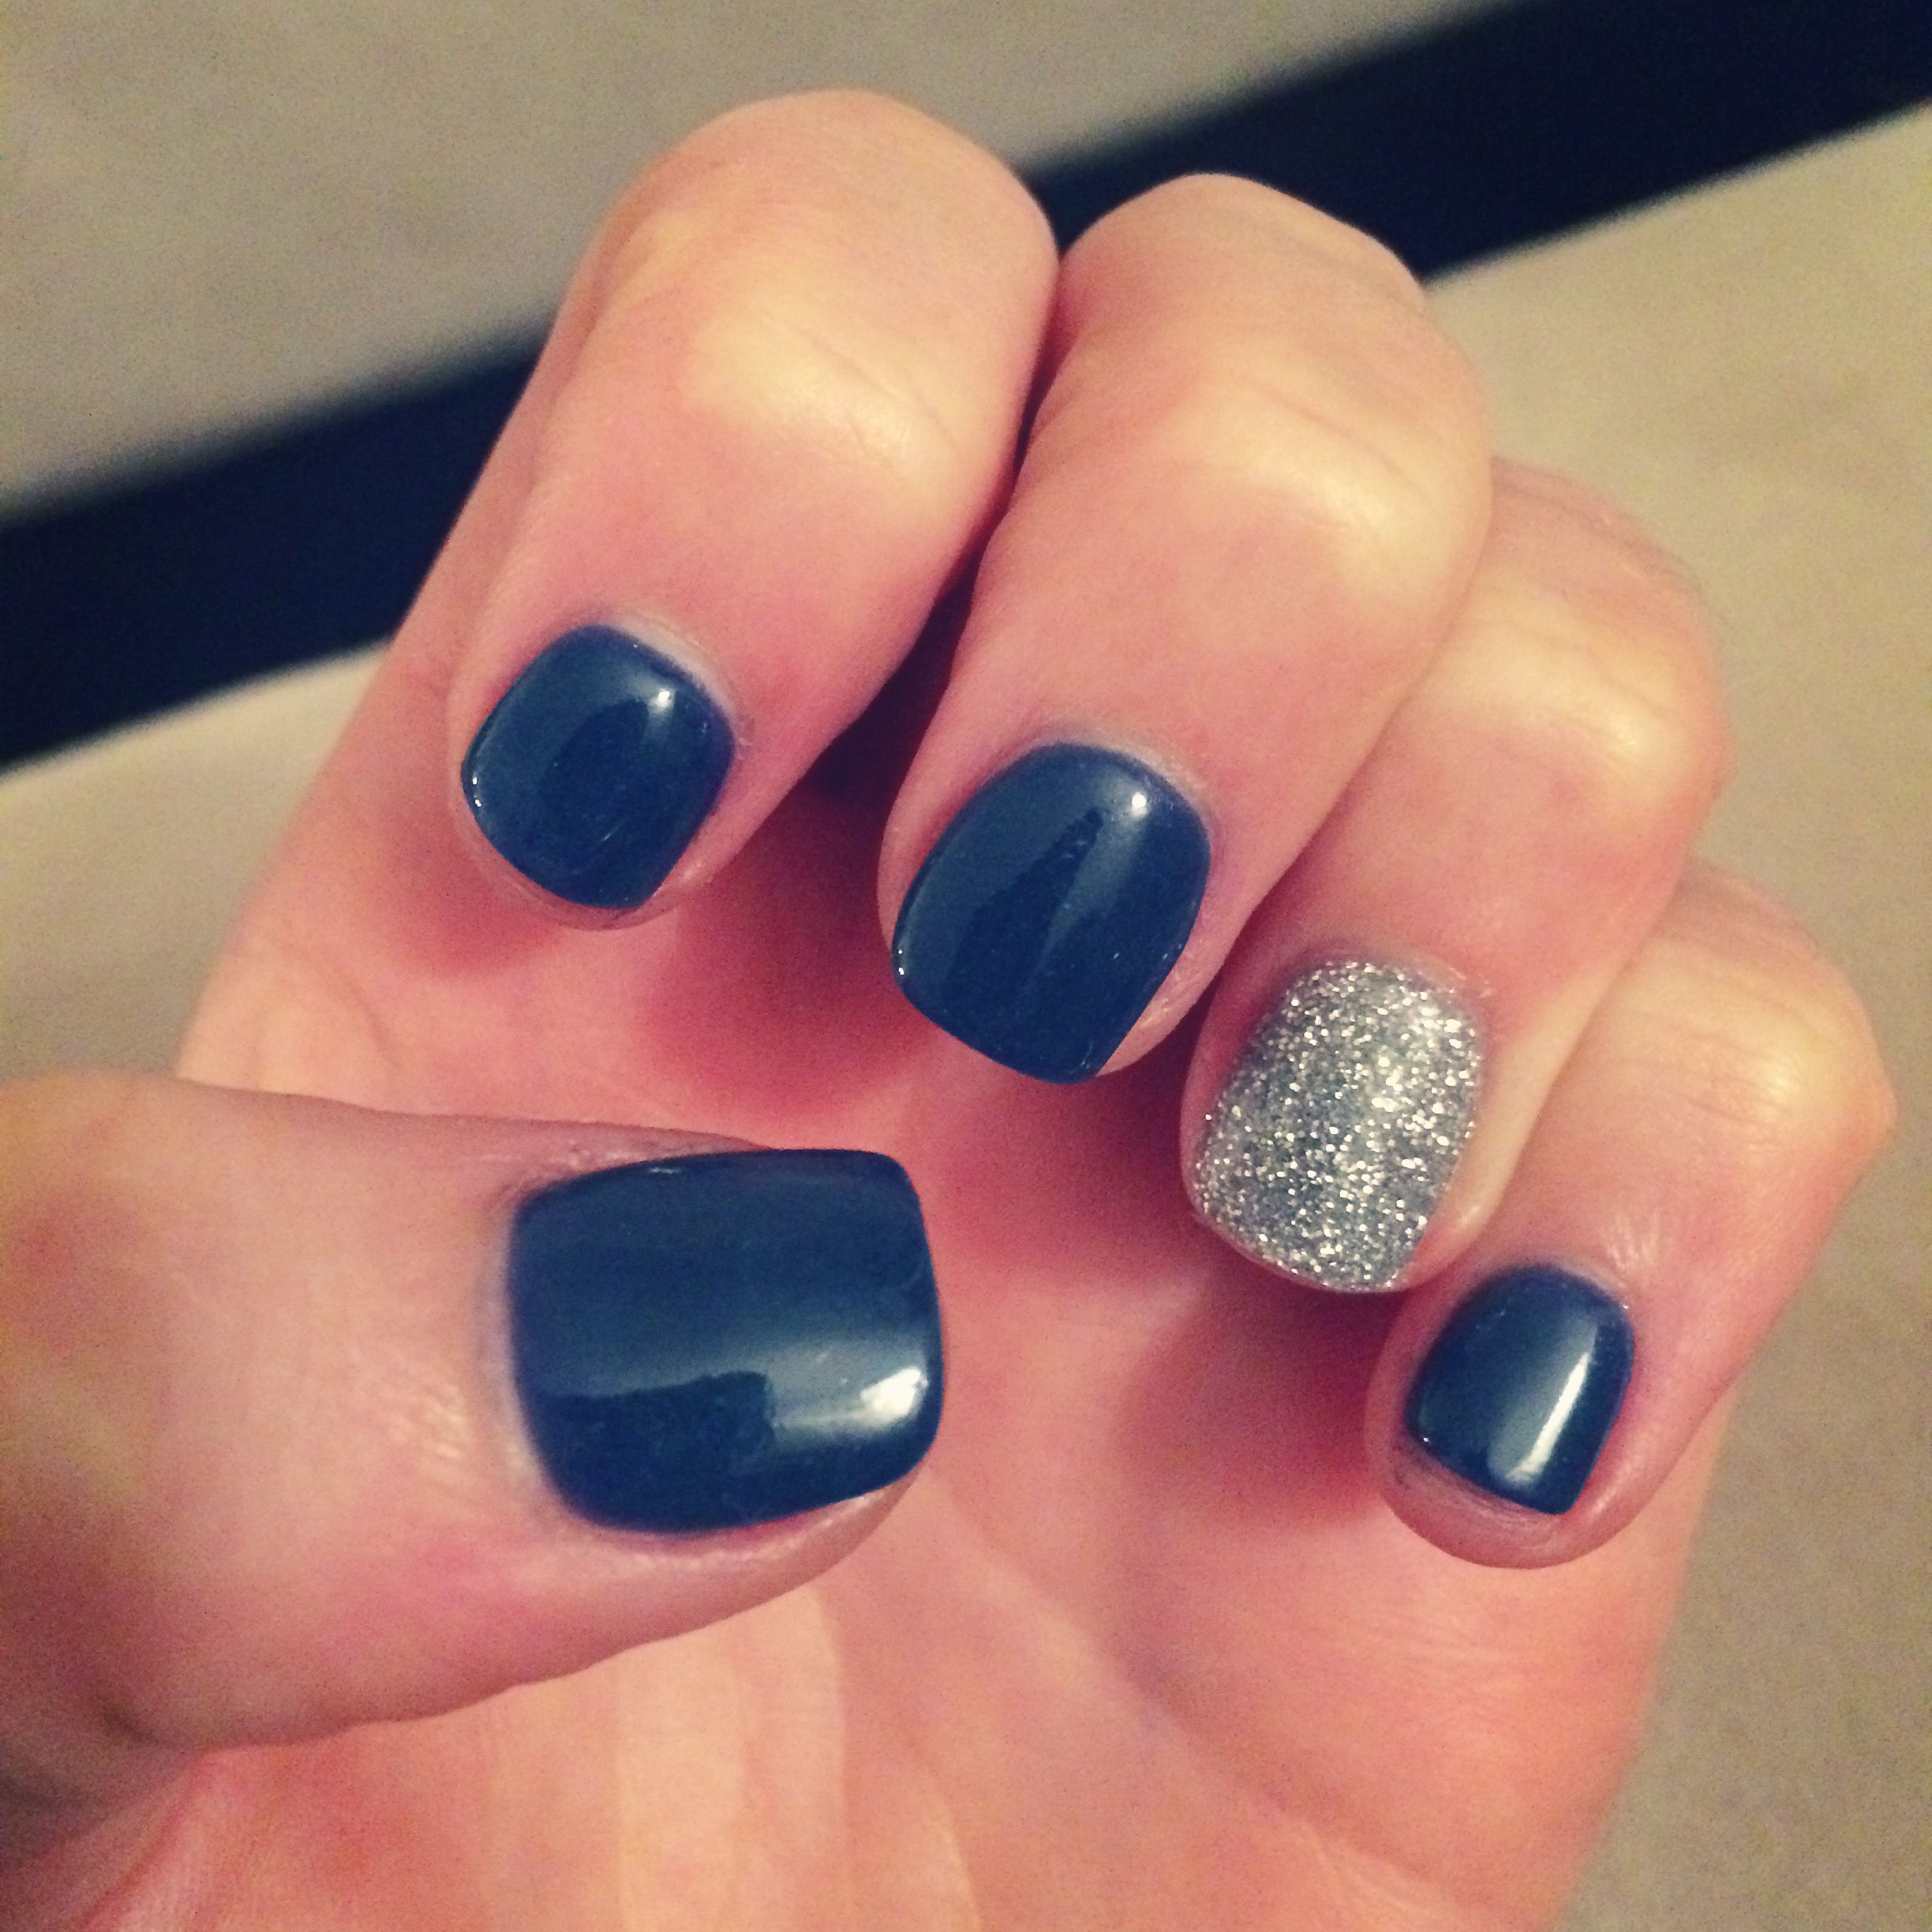 Nexgen Navy And Silver Glitter Nails For The Winter Nexgen Nails Colors Trendy Nails Nexgen Nails